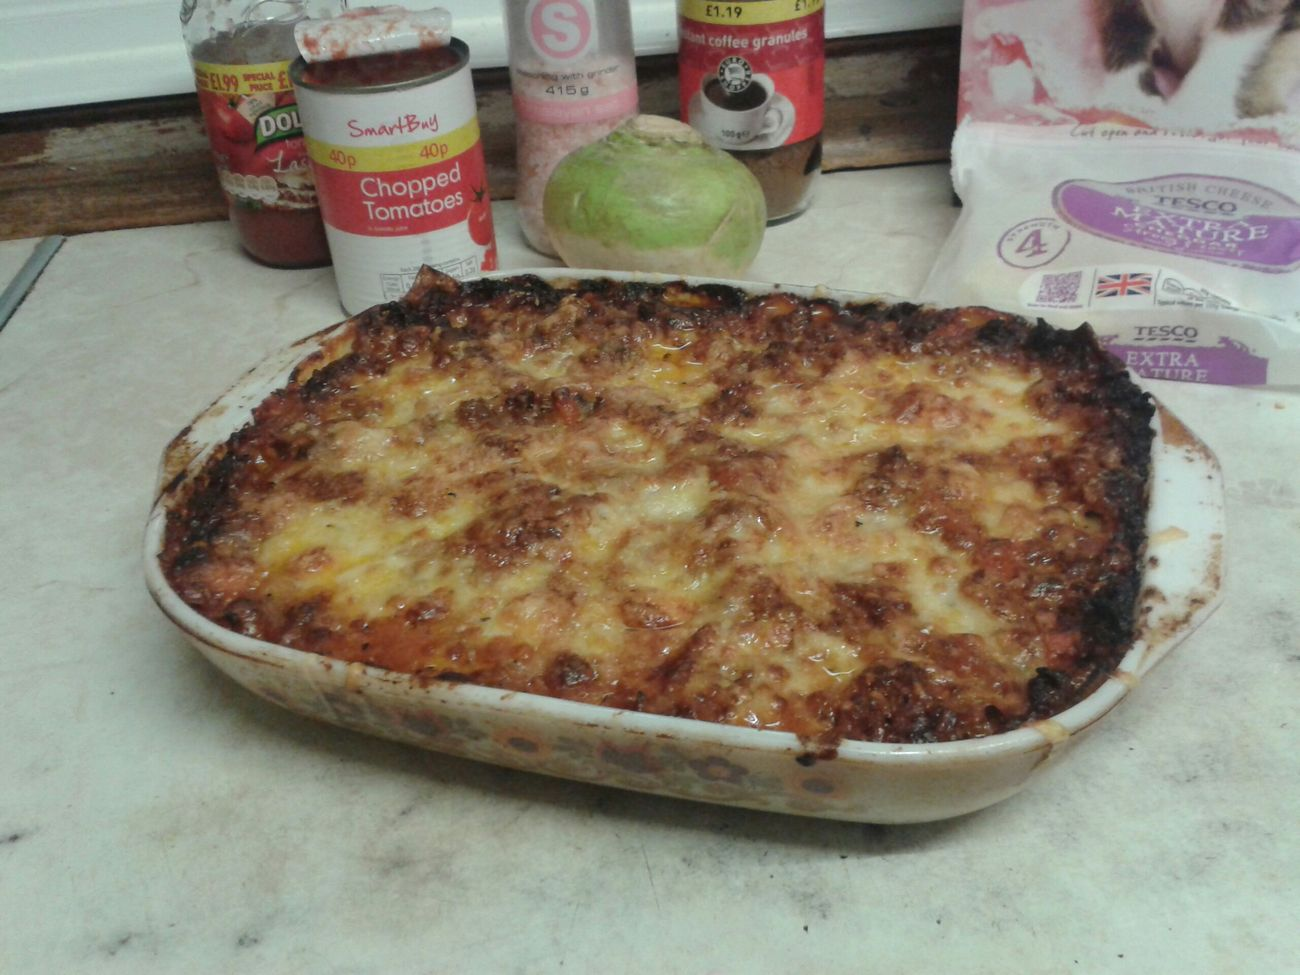 After a long day time for a hefty meal Dinner Time Uk Home Cooked lasagne Check This Out Razorspics Stinger11th